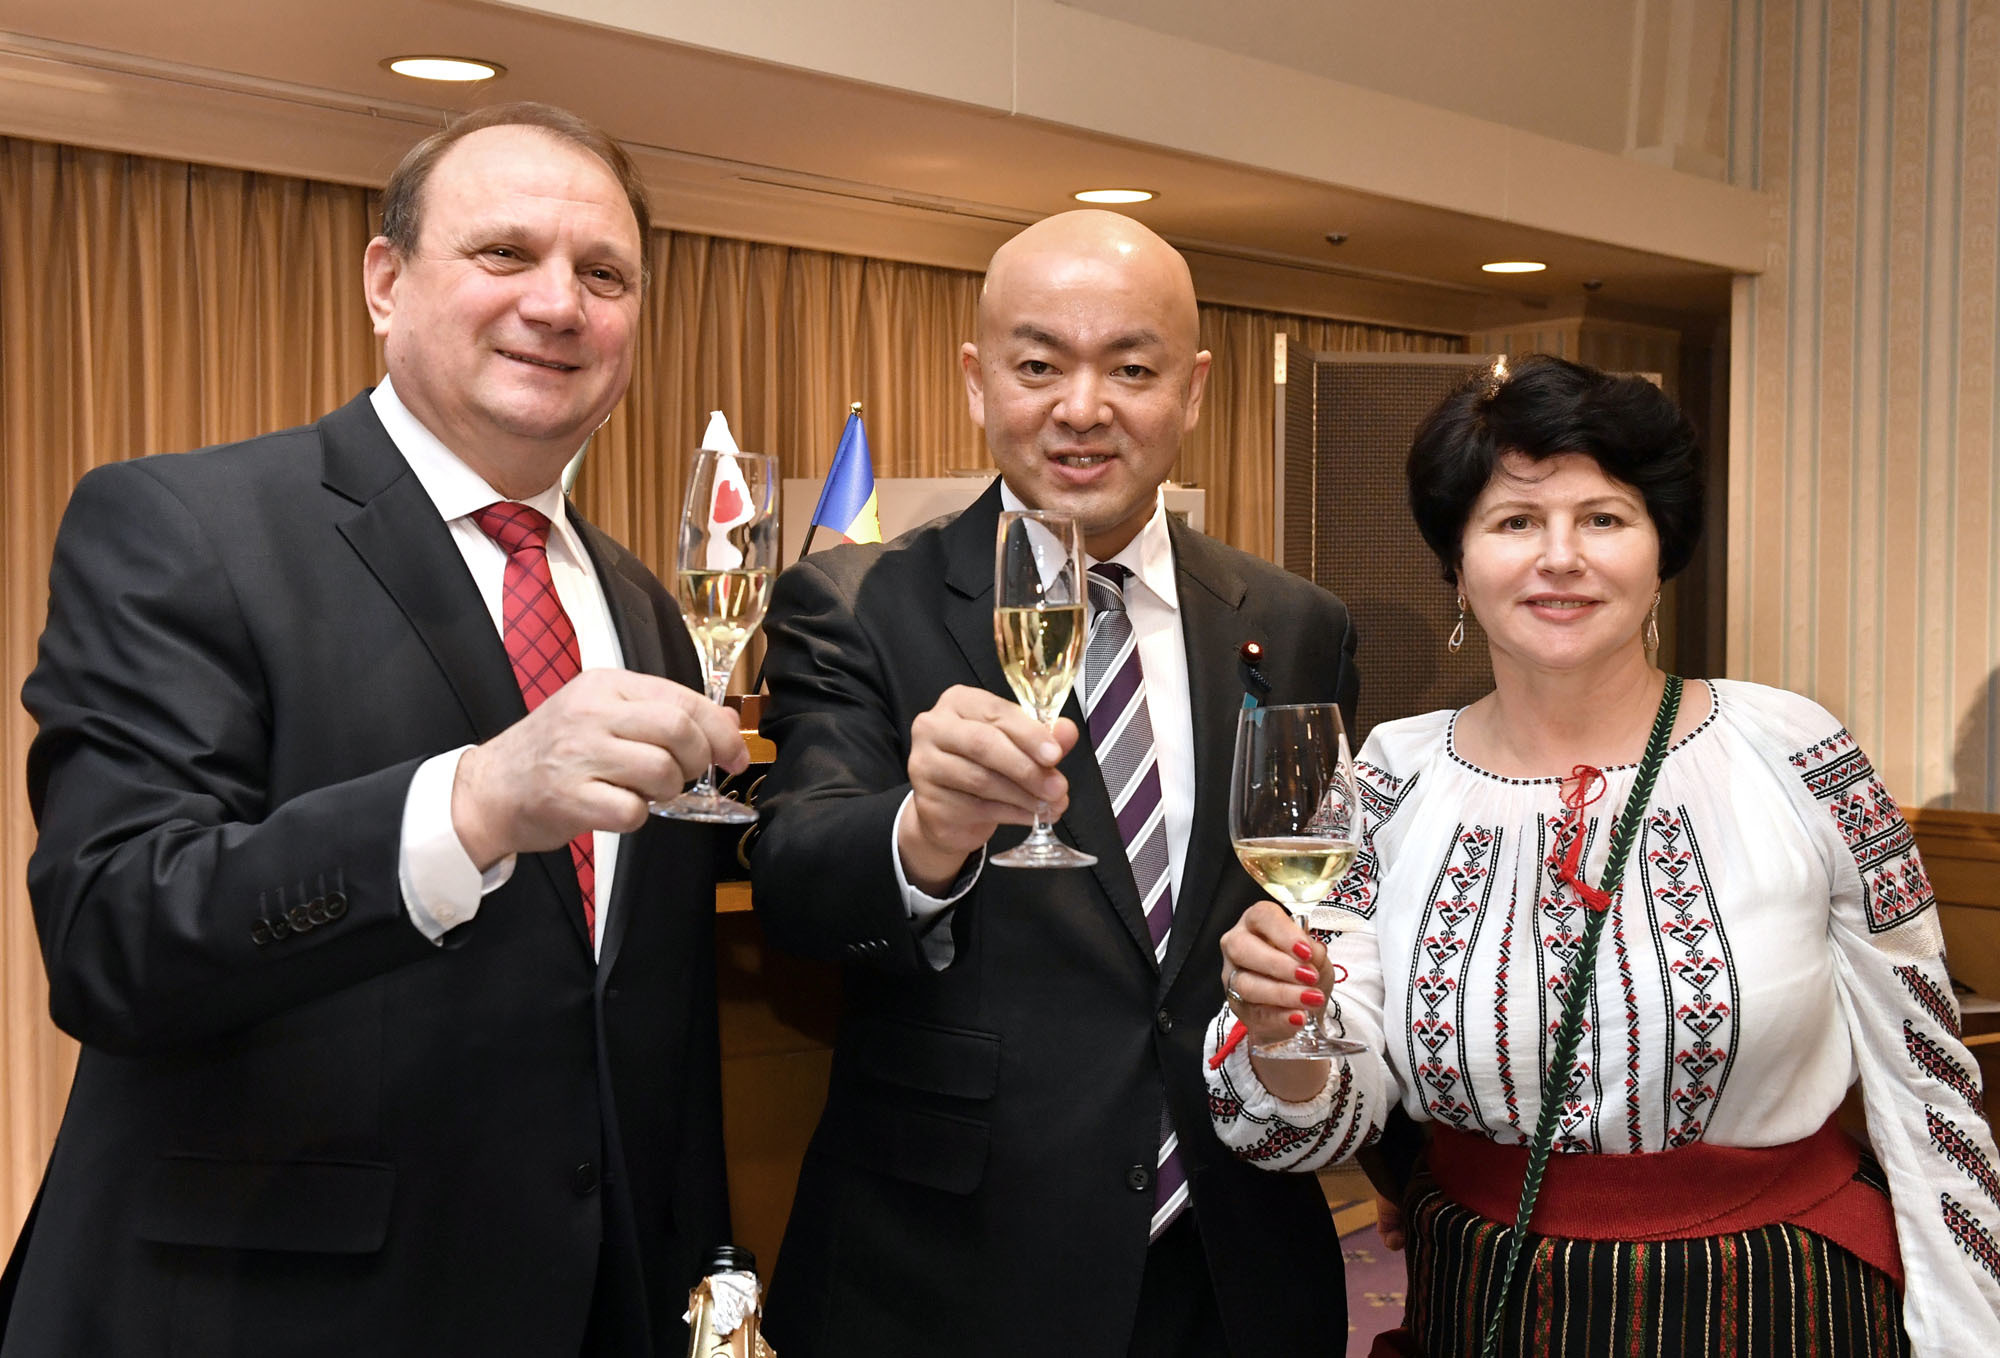 Moldovan Ambassador Vasile Bumacov (left) and his wife, Ludmila, raise their glasses during a toast with Manabu Horii, parliamentary vice-minister for foreign affairs, during a campaign to promote Moldovan wine and products such as nuts, dried fruit and honey by the Moldova Investment and Exports Promotion Organization in Japan at Hotel Okura Tokyo on Dec. 18. |  YOSHIAKI MIURA